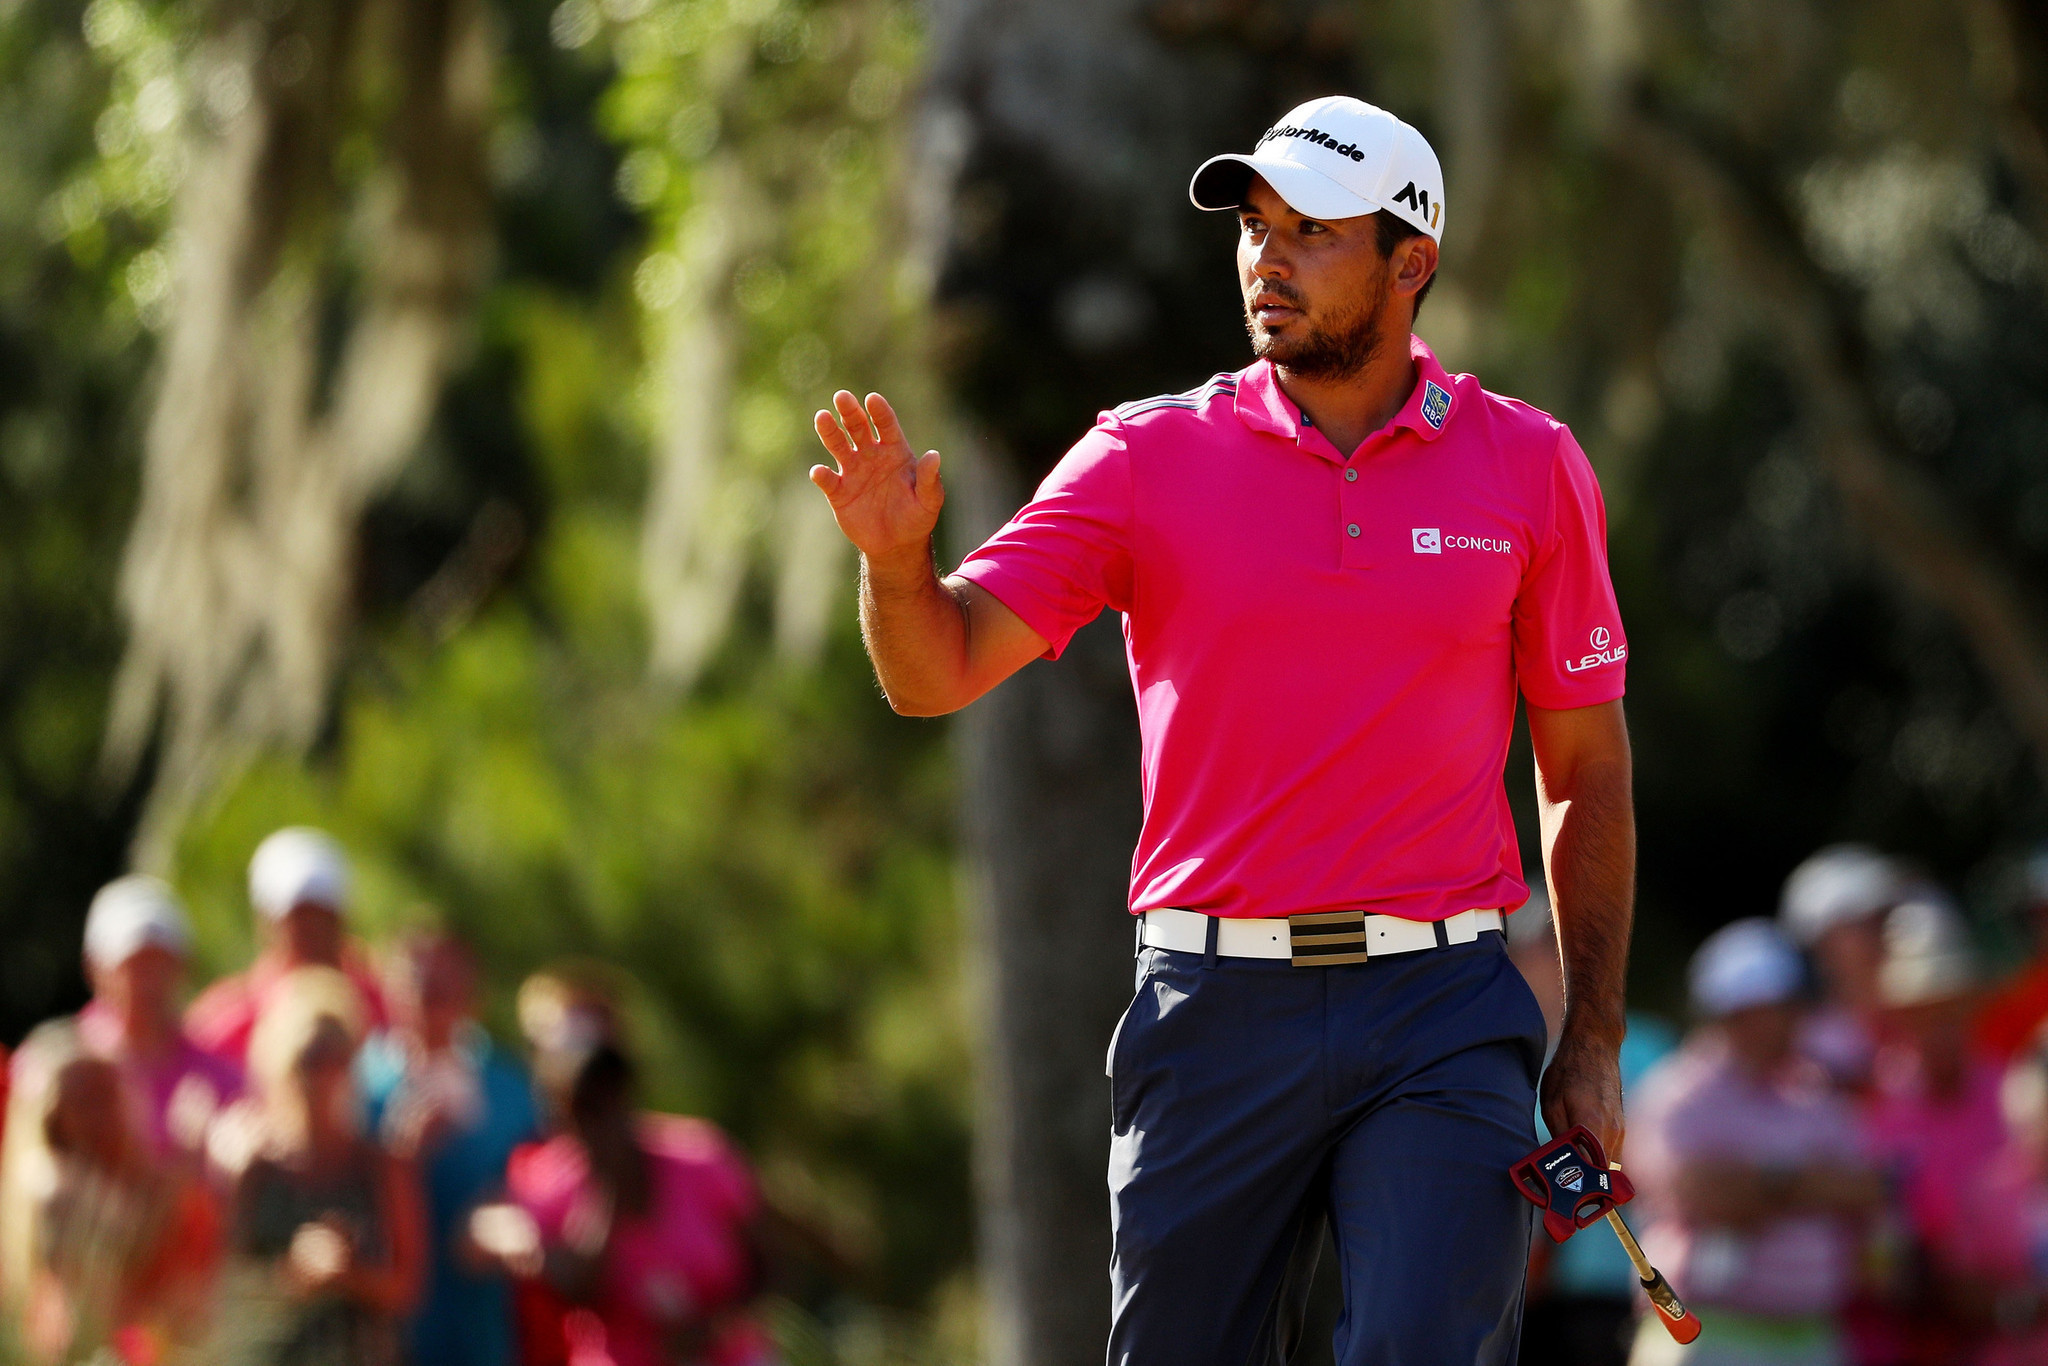 Jason Day bends but doesn't break on the way to winning Players Championship - LA Times